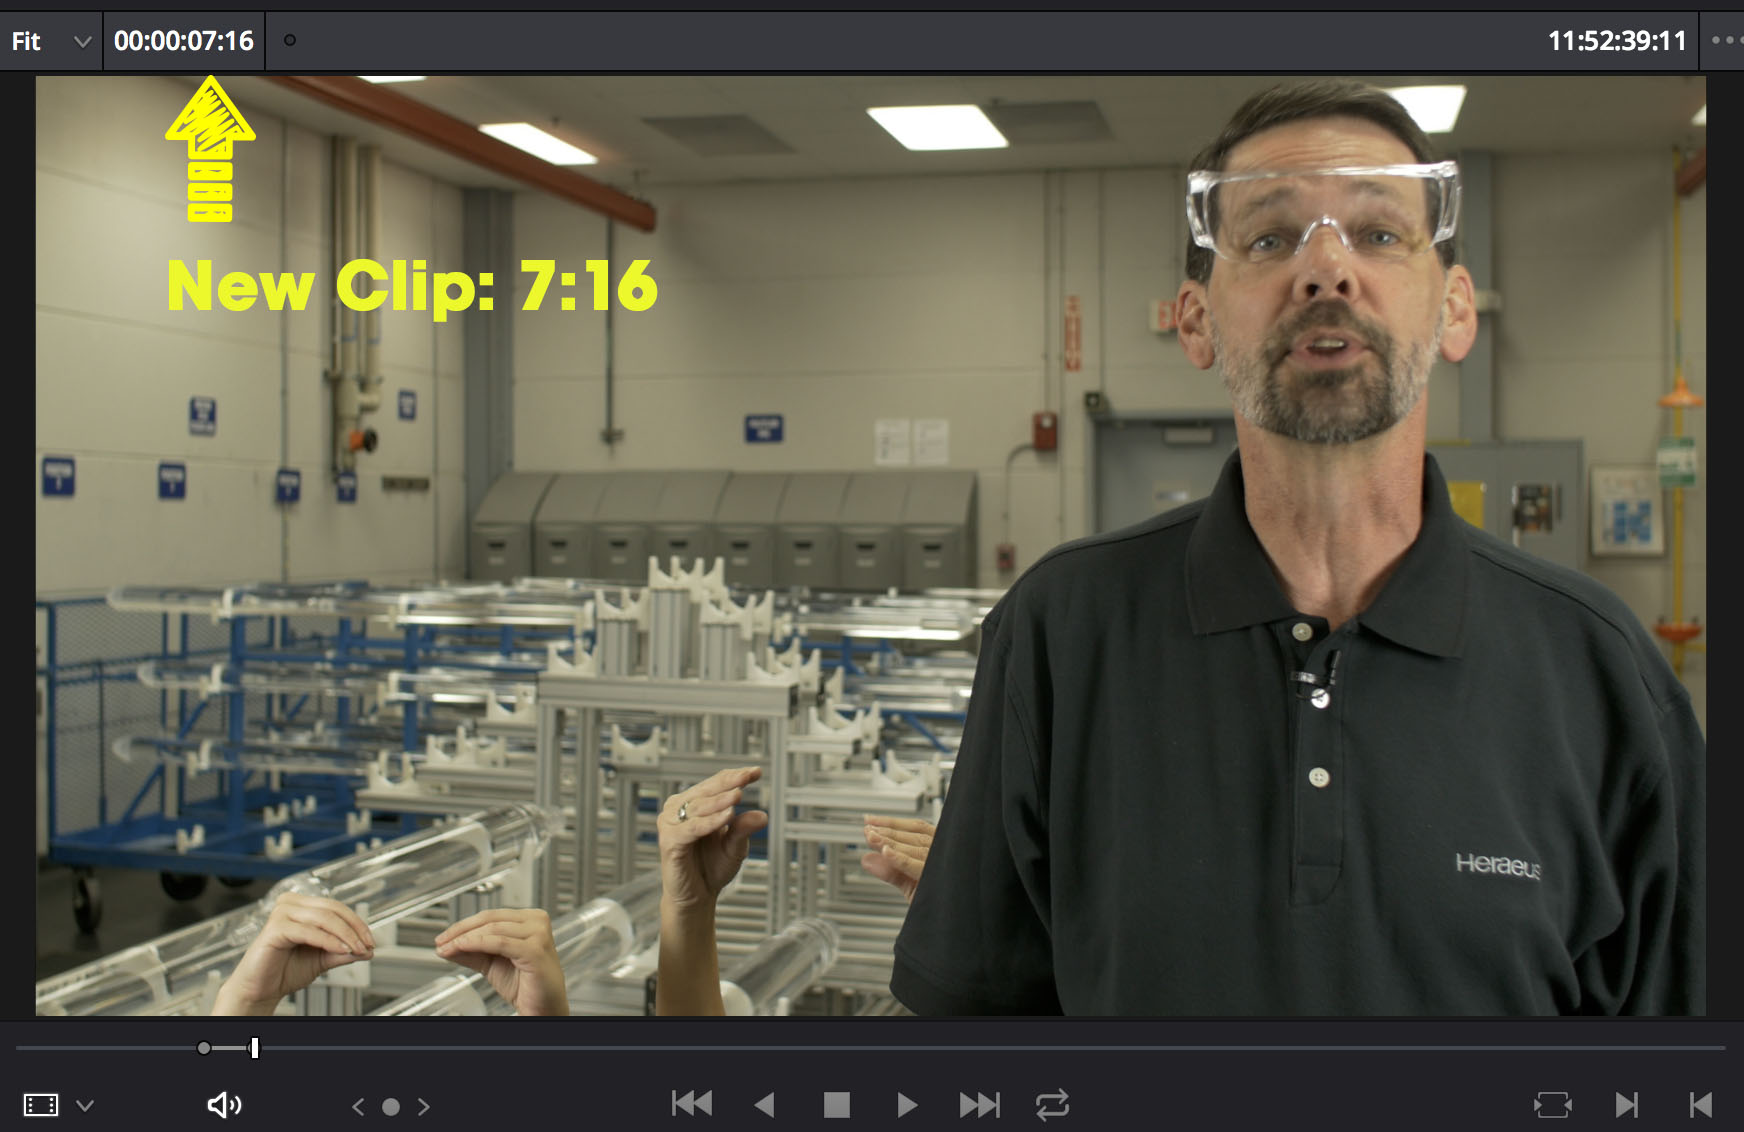 Ripple Overwrite Step Two – Replacement shot is 7:16. 10 seconds shorter than the original clip.